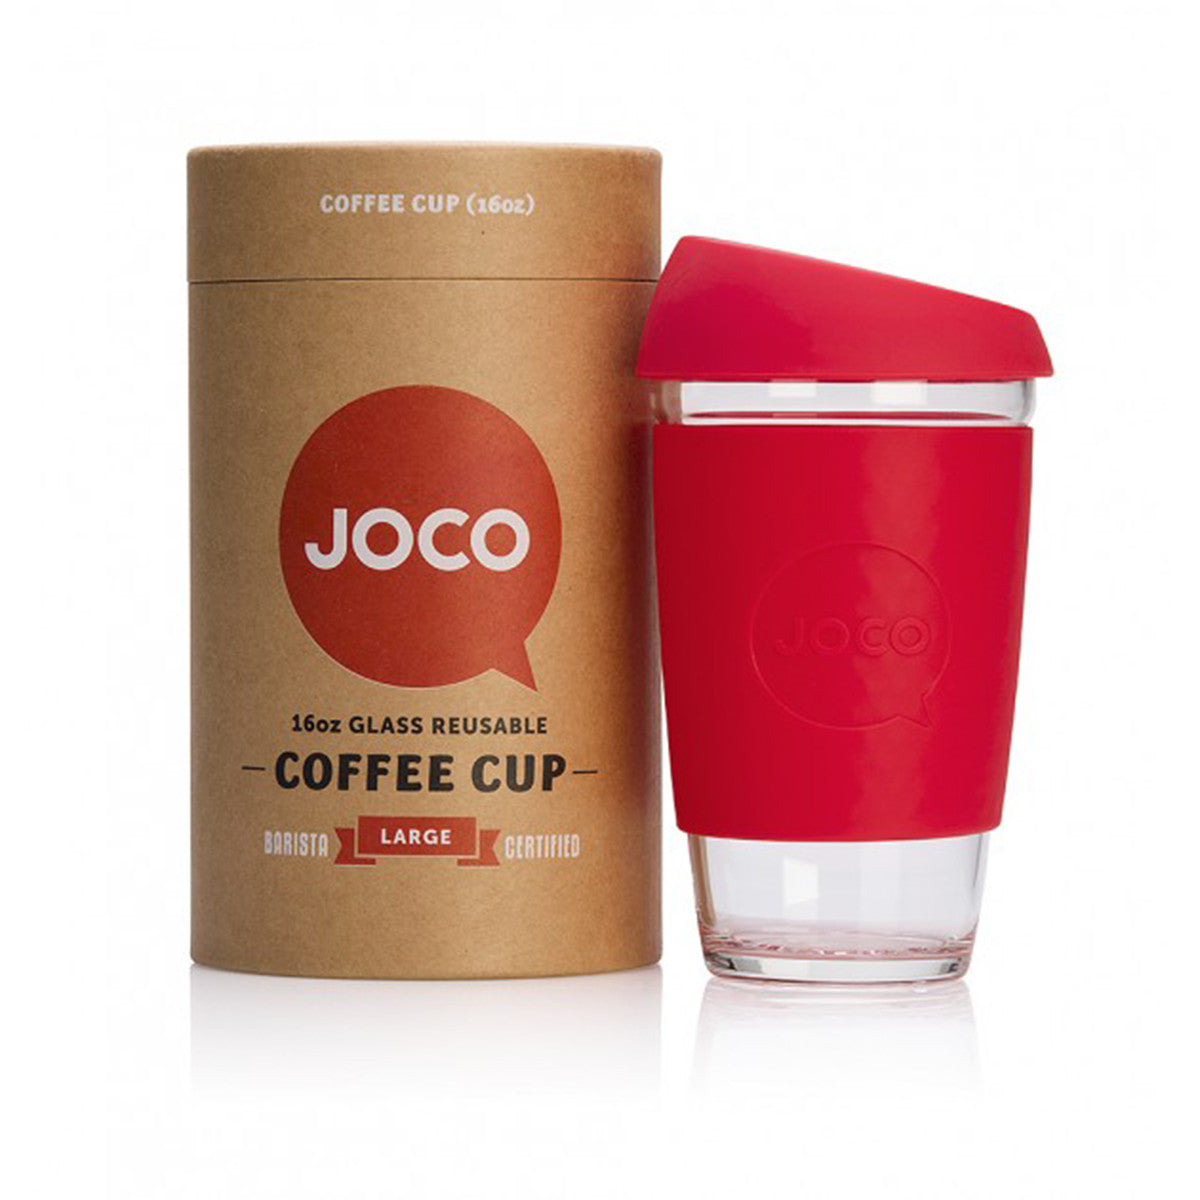 Joco Cup Reusable Glass Cup 16oz Joco Coffee & Tea Cups at Little Earth Nest Eco Shop